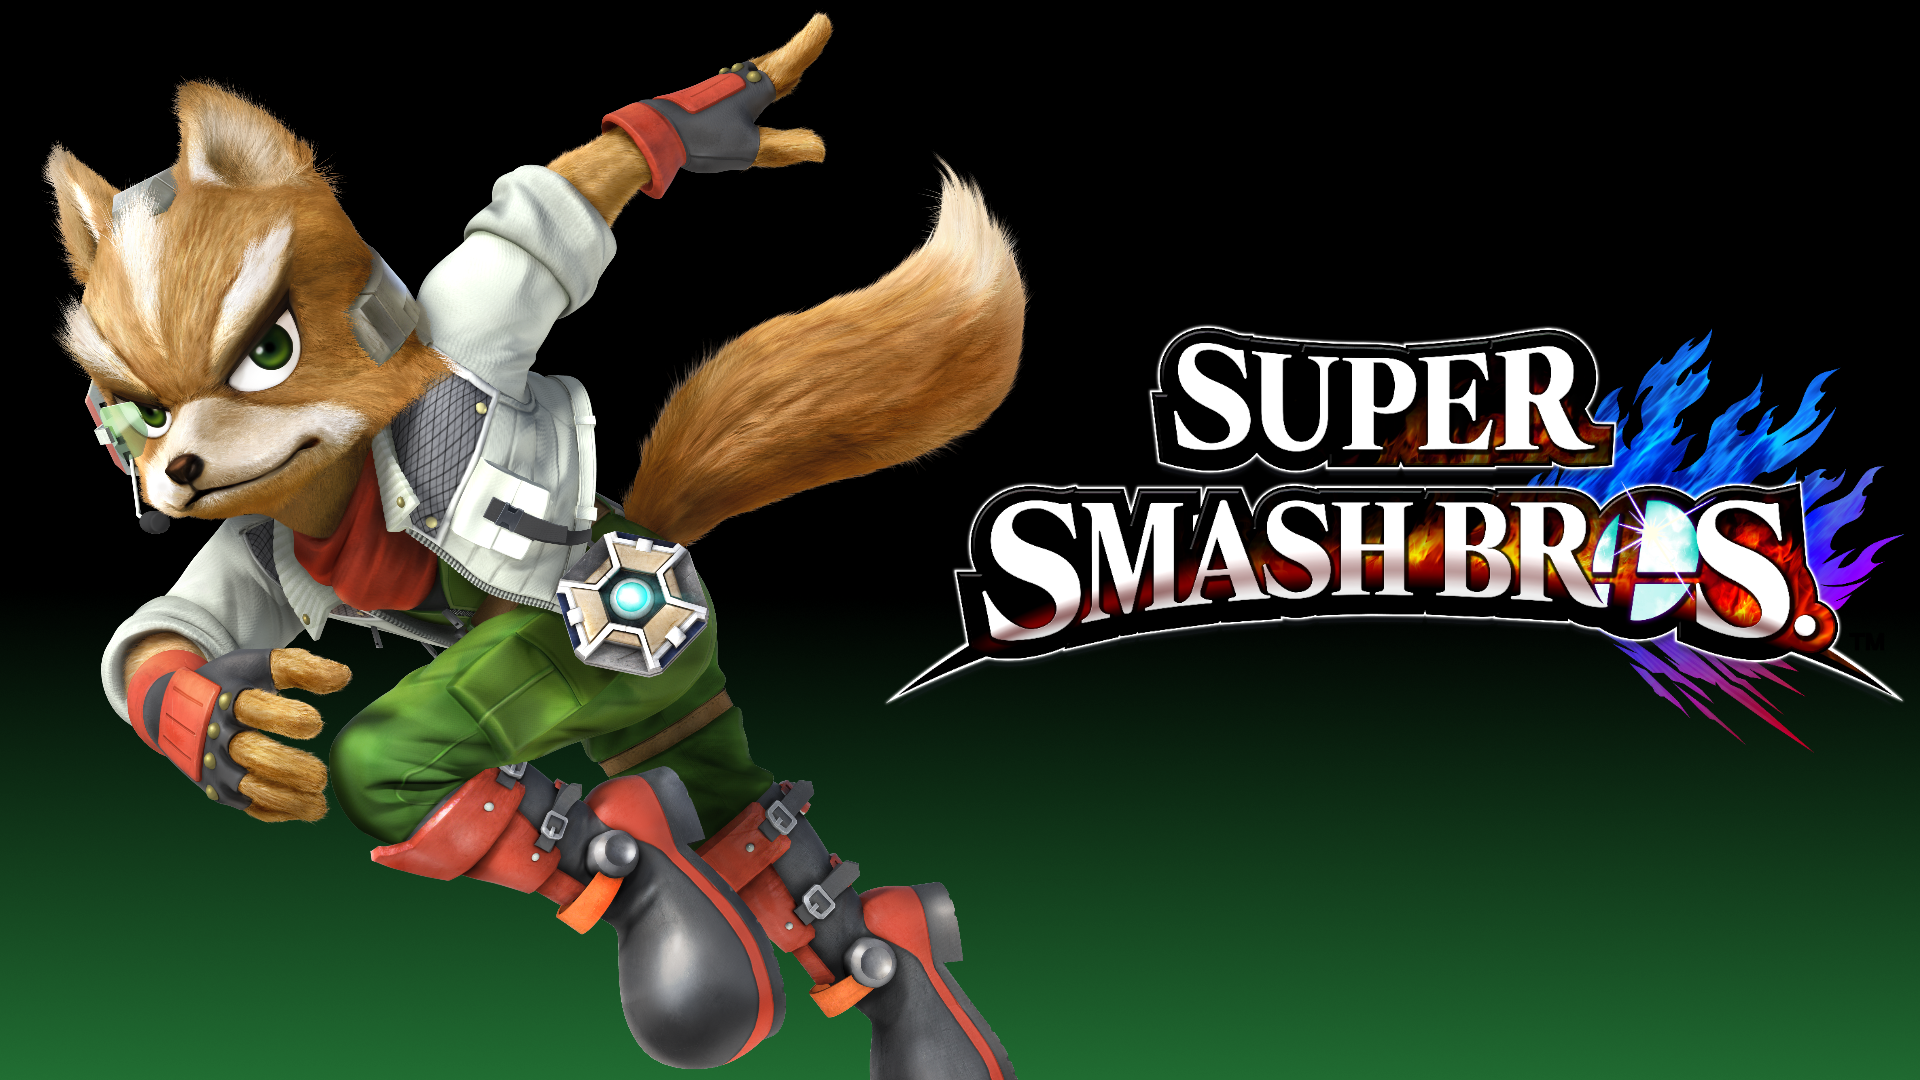 Mewkwota Super Smash Bros 4: Super Smash Bros. 4 Wallpaper